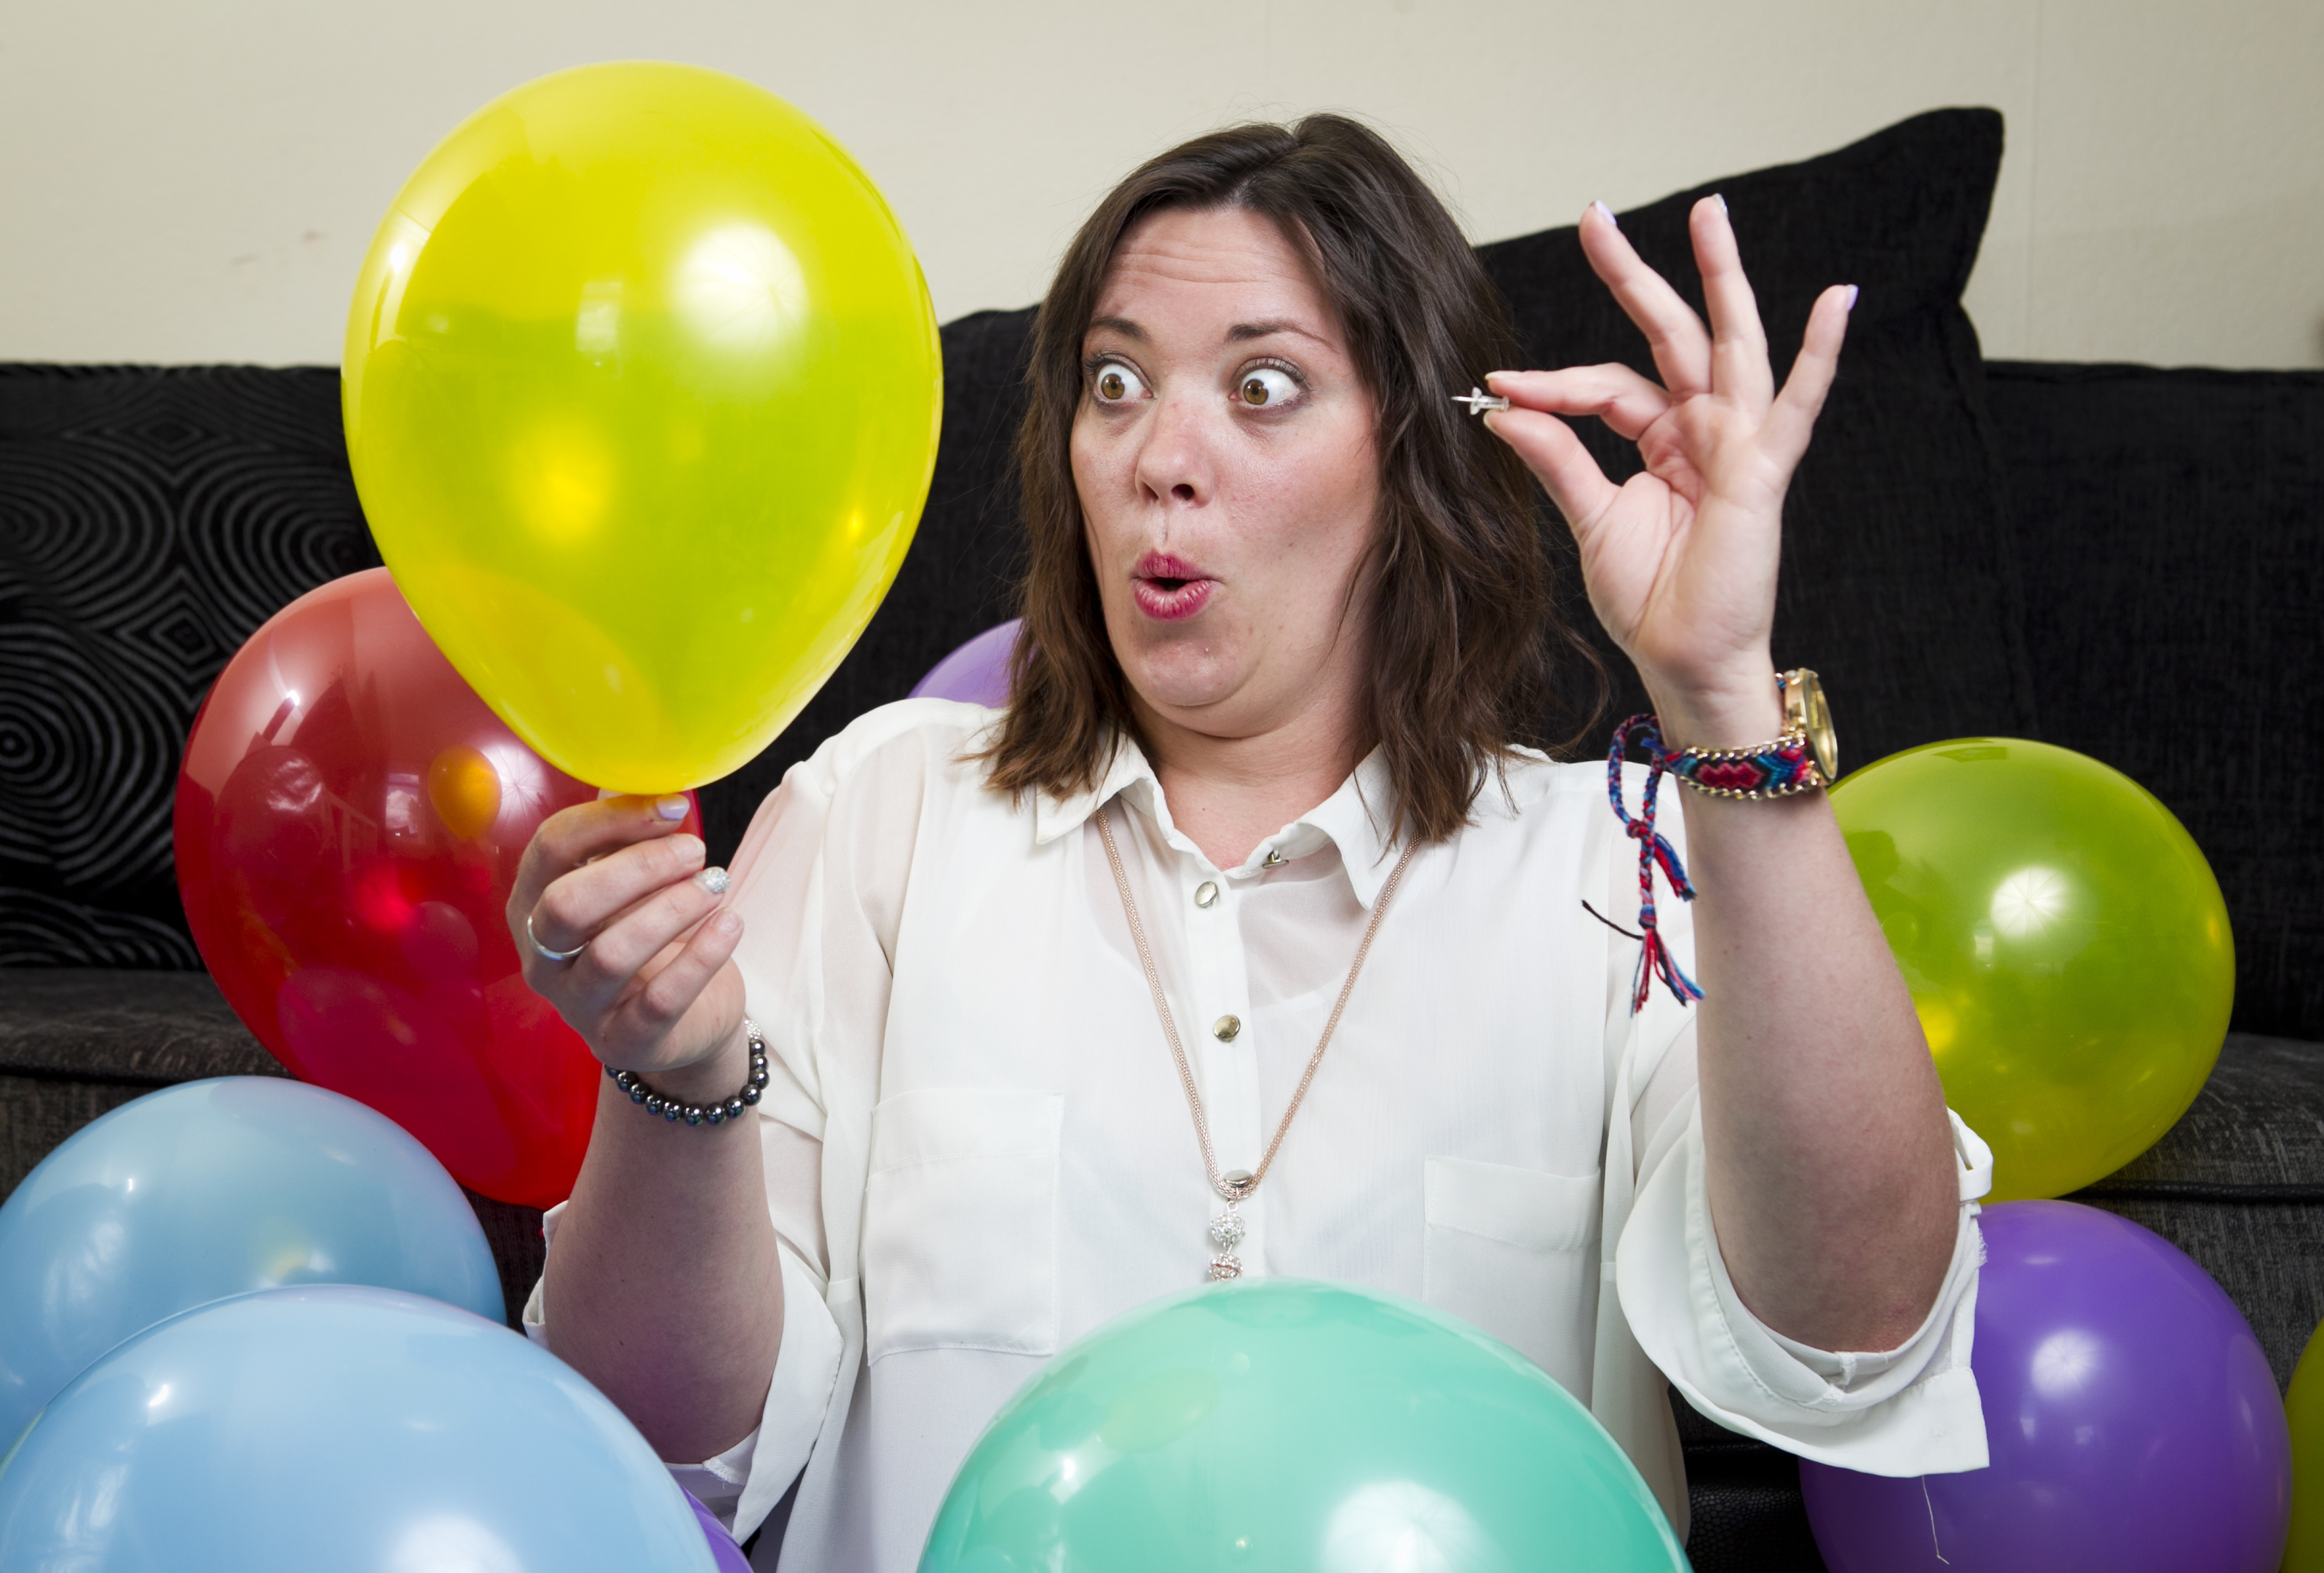 Woman with phobia of balloons finally bursts her fear